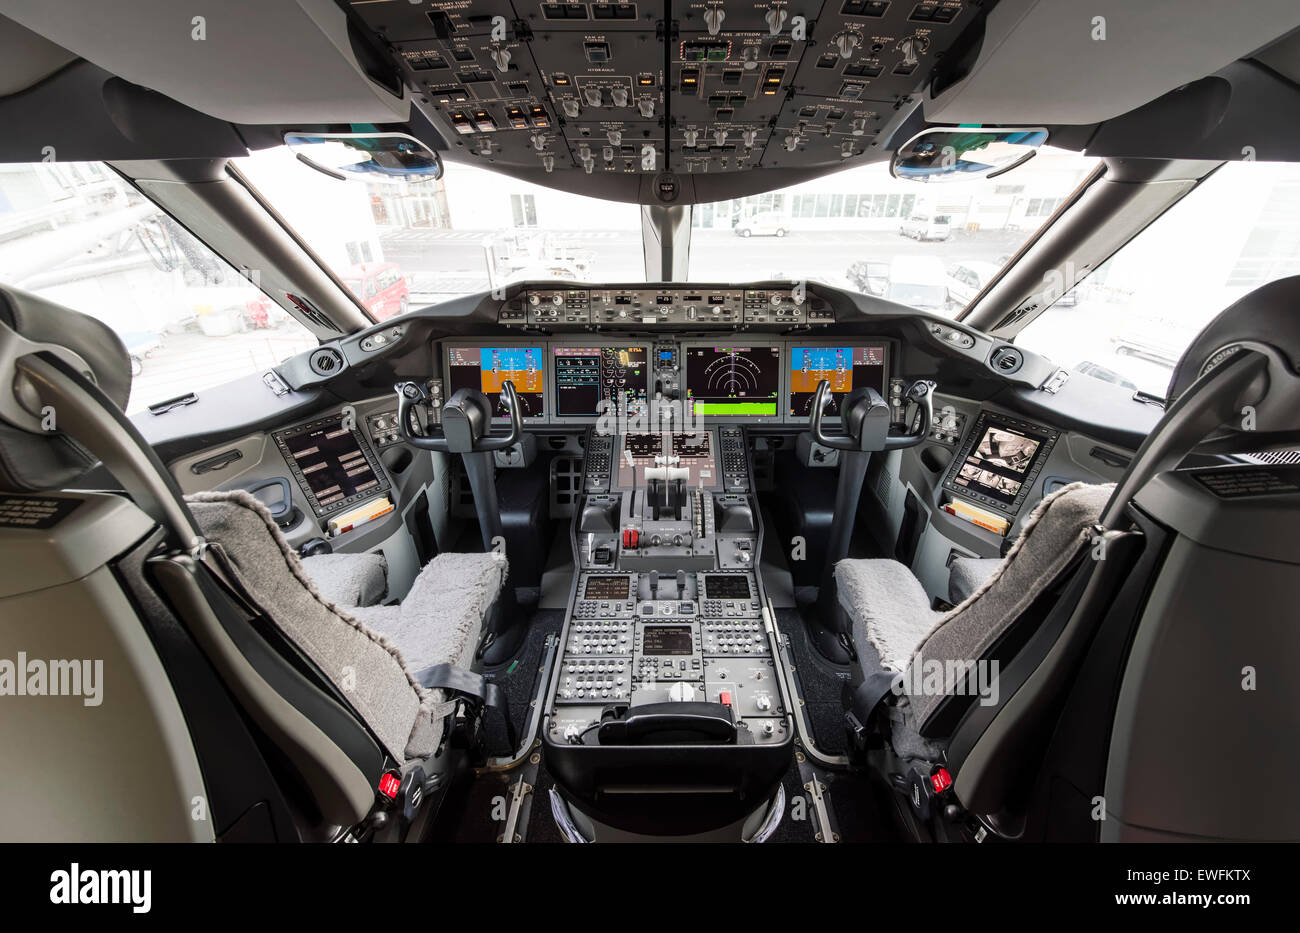 Boeing 787 Dreamliner Interior Stock Photos & Boeing 787 Dreamliner ...